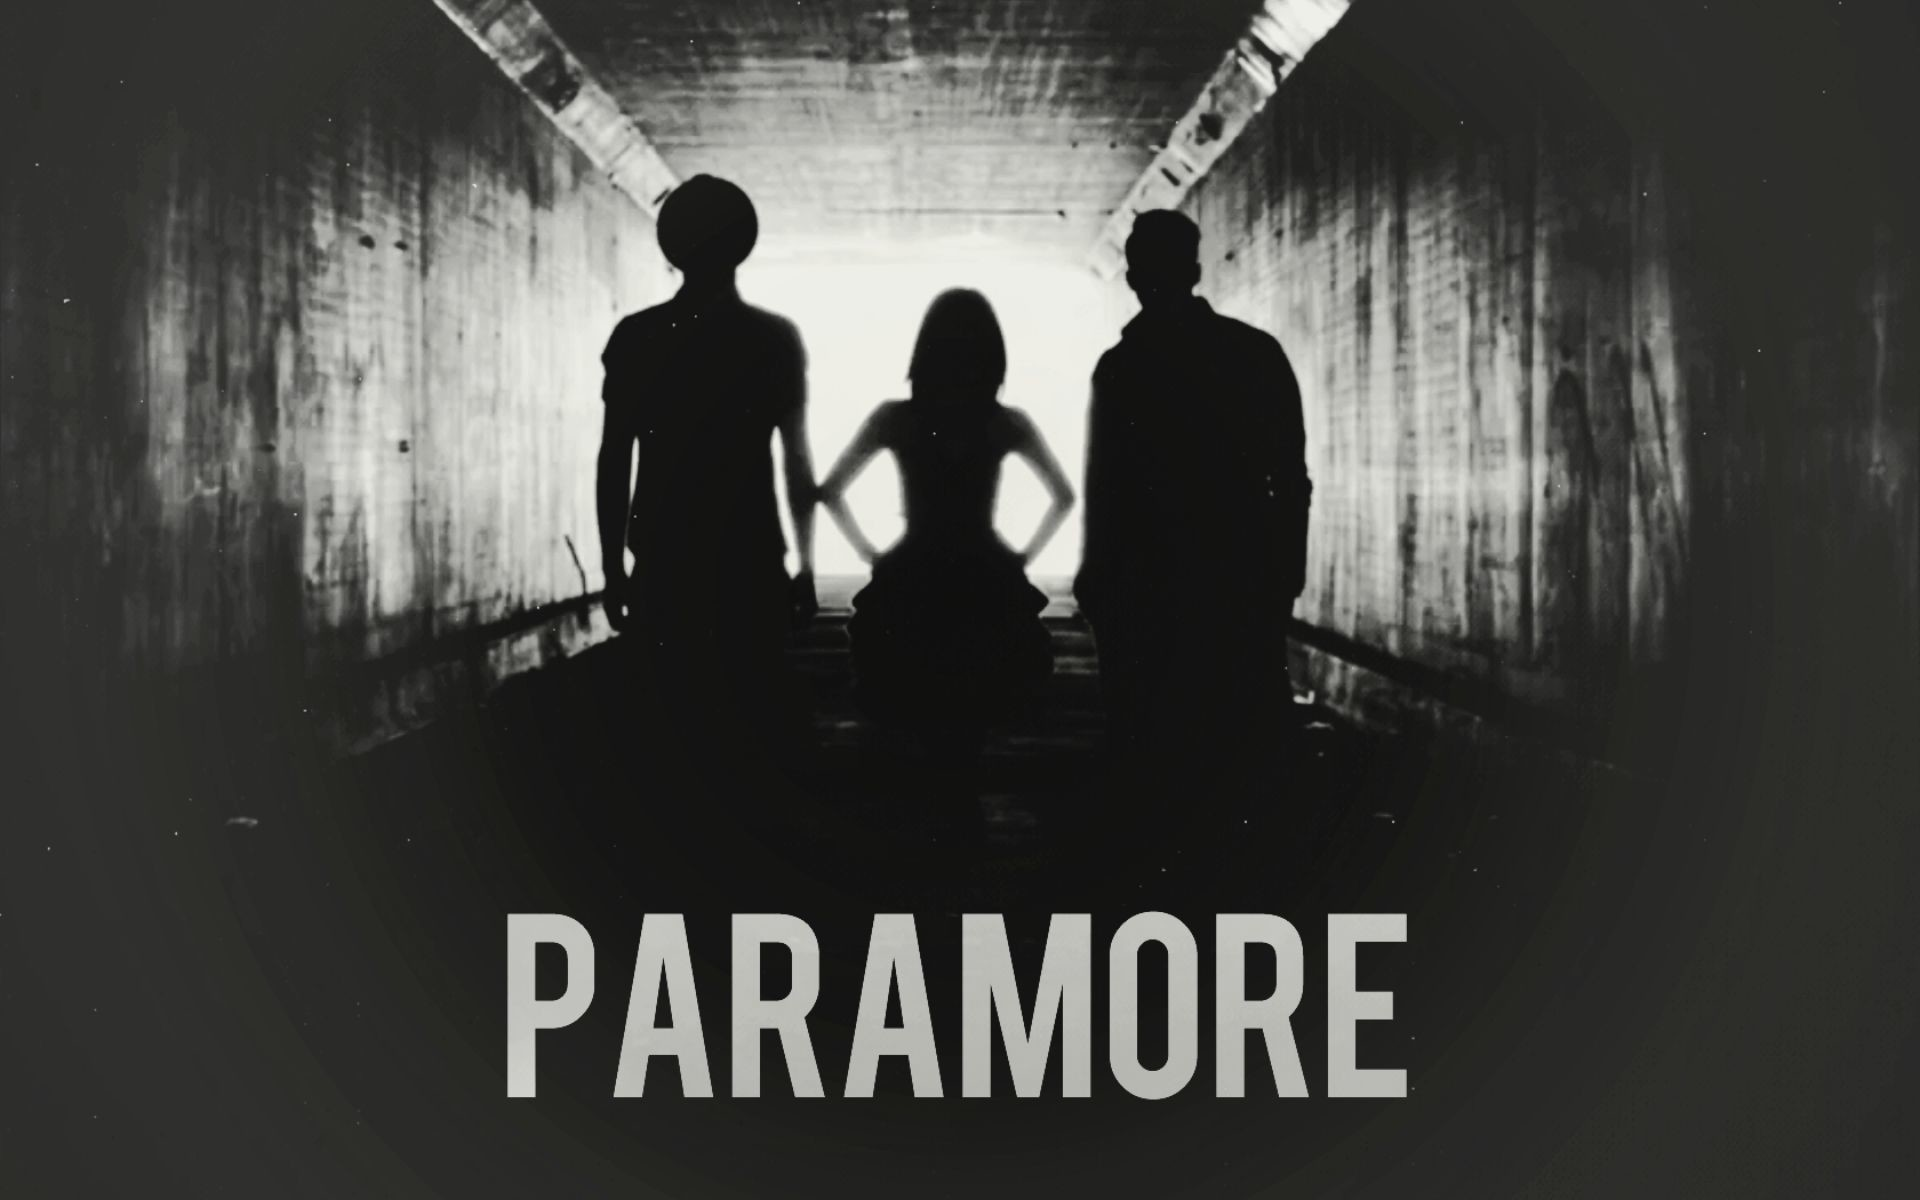 2048x1152 1920x1080 Wide HDQ Paramore Wallpapers, Cool Wallpapers – Wallpapers and Pictures Graphics for PC & Mac